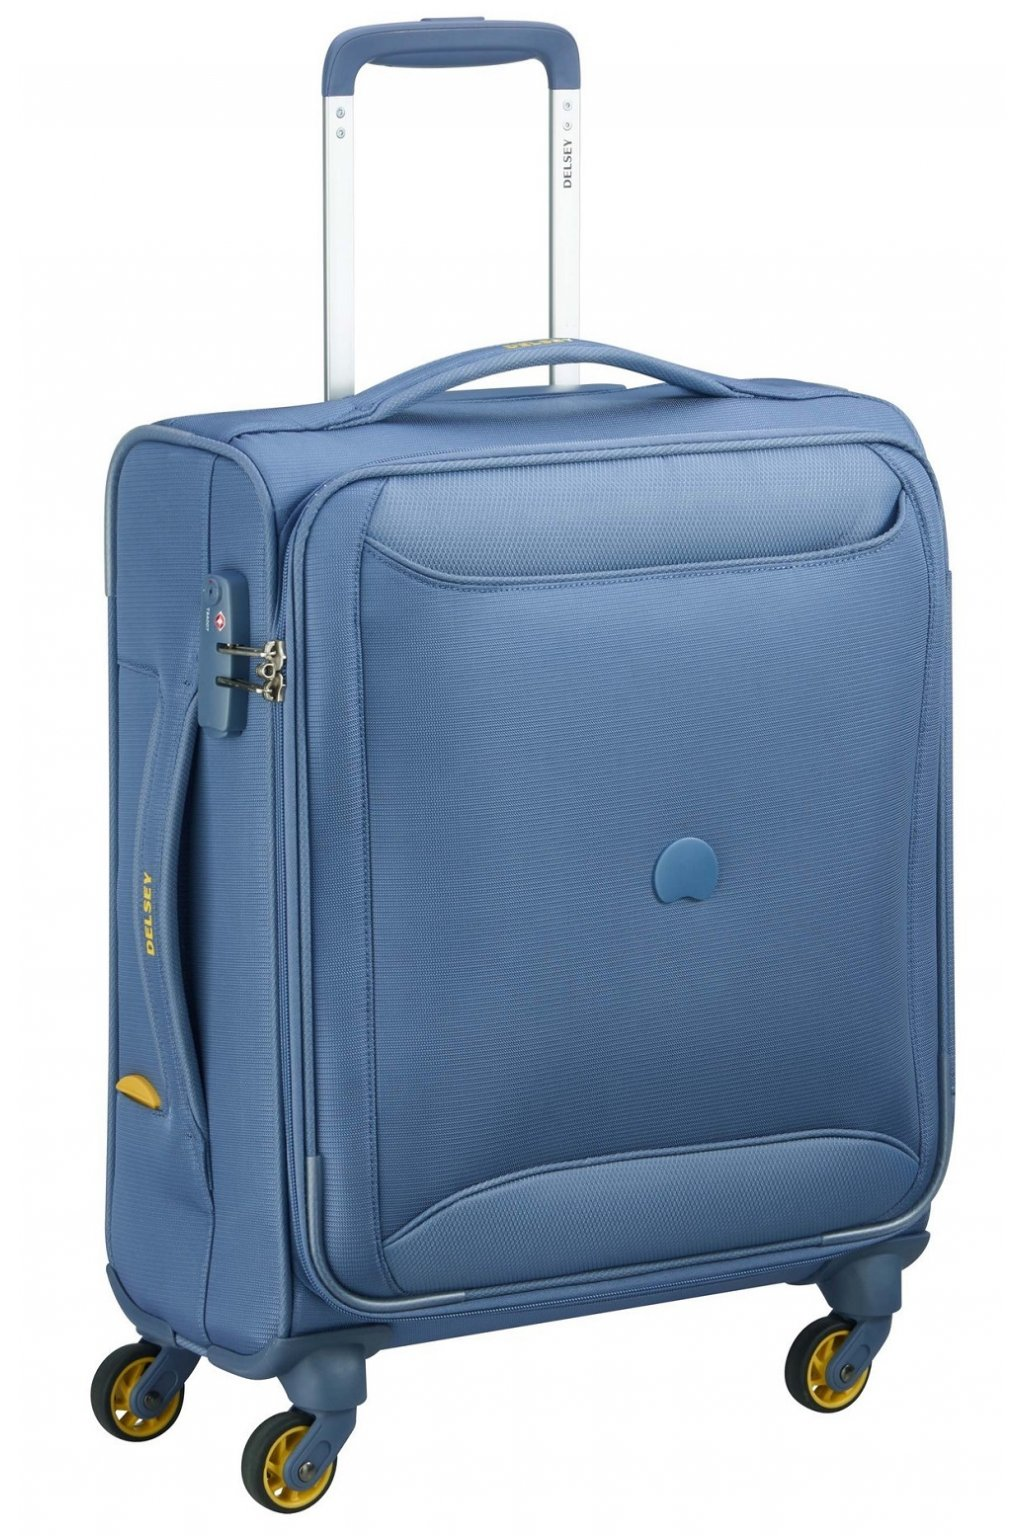 kufrland delsey chartrouse blue (3)